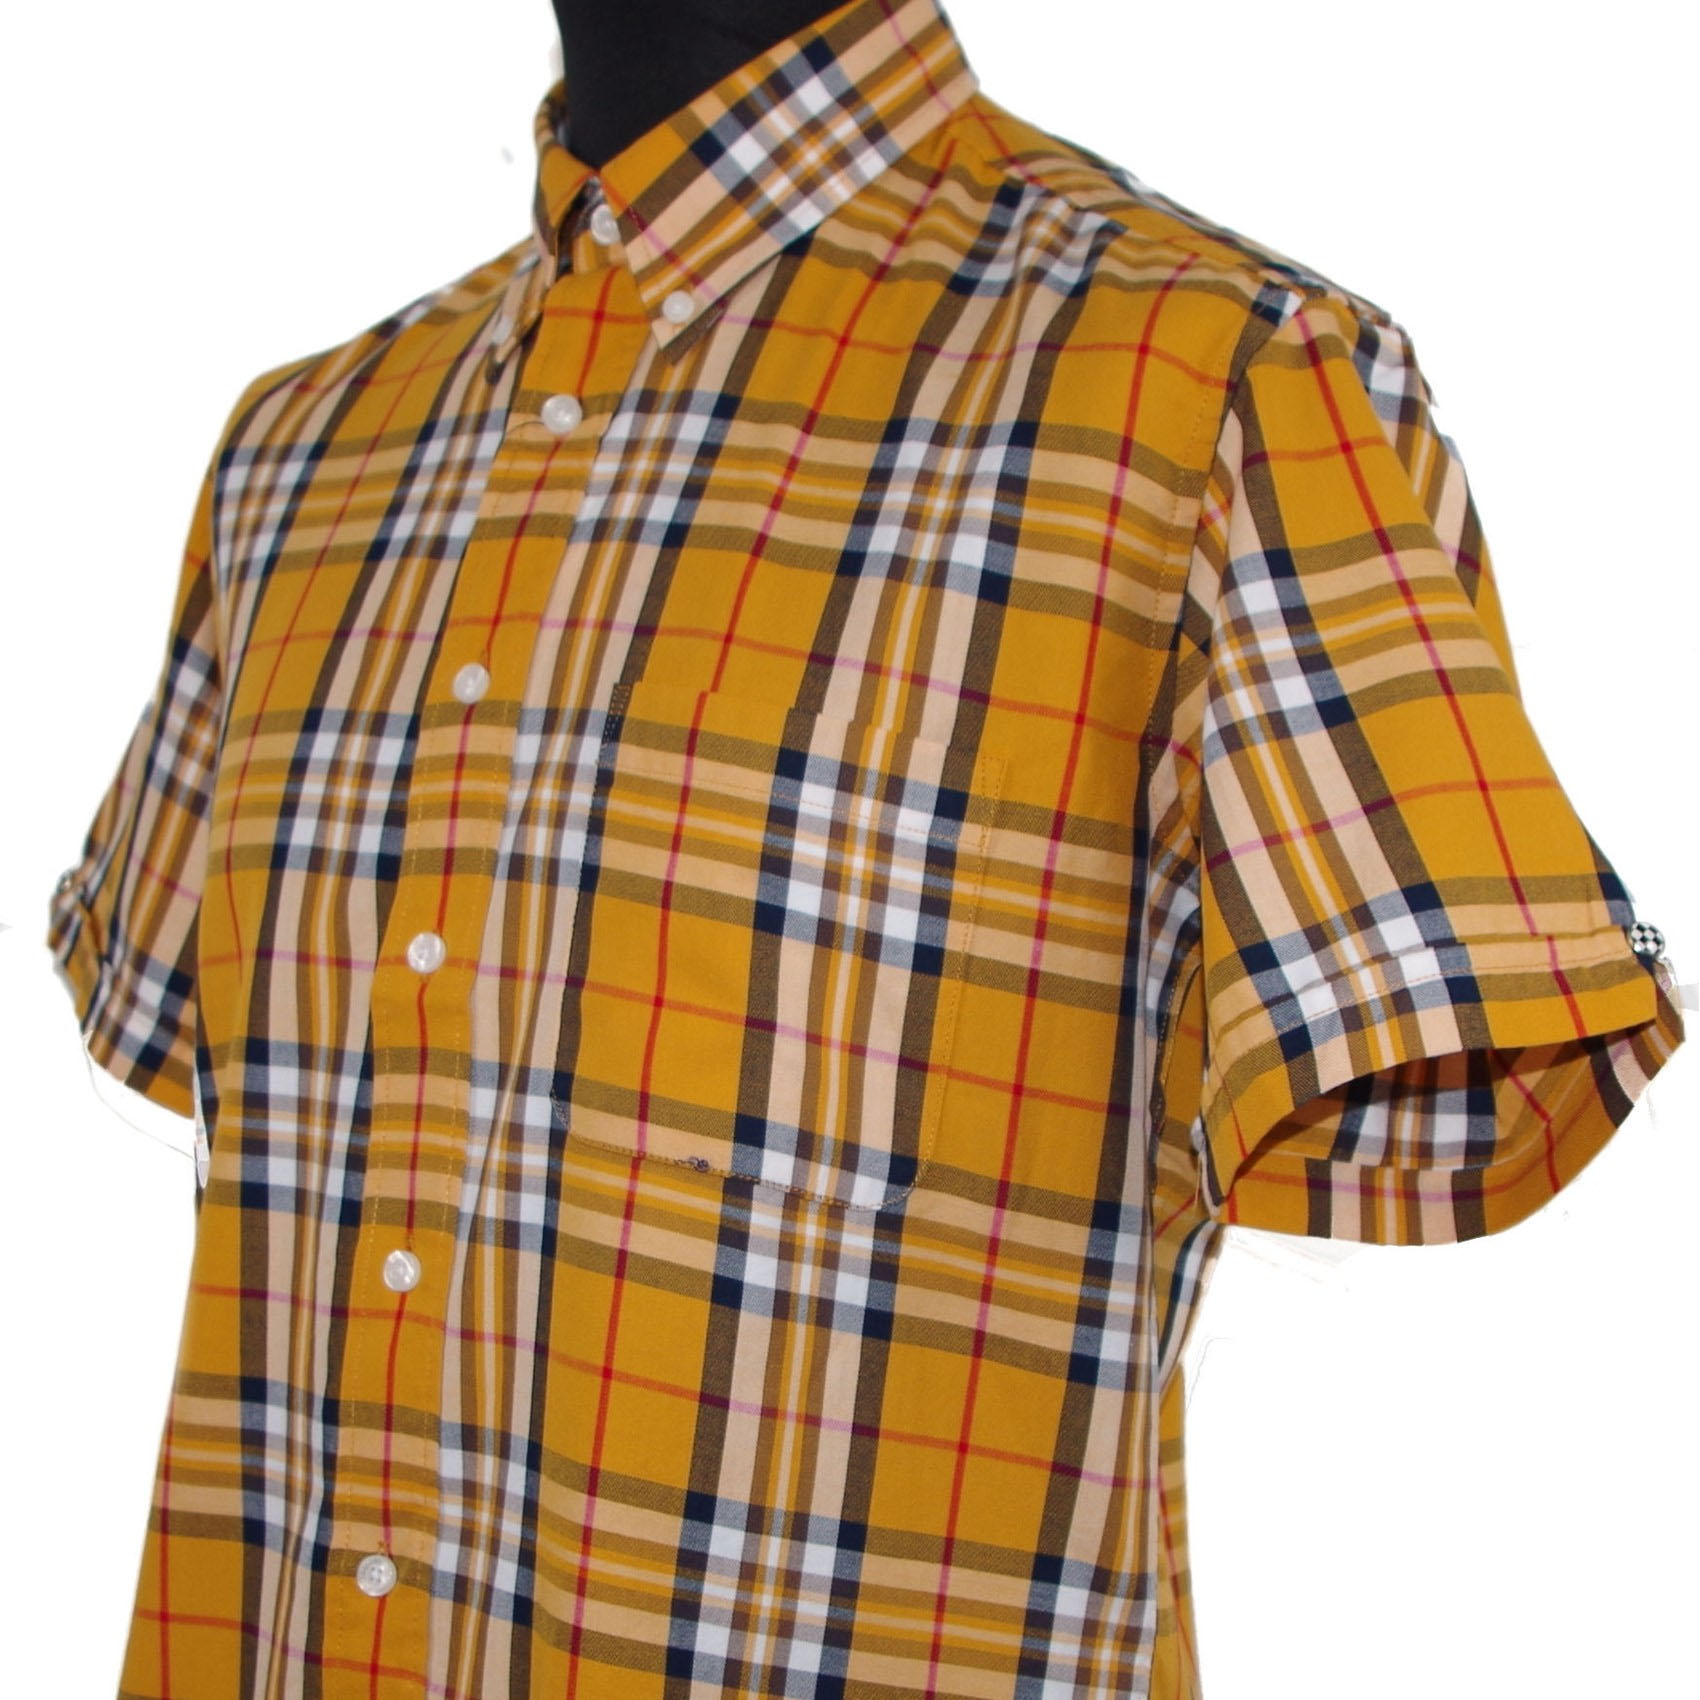 Vintage Button Down Shirt by Warrior Clothing- Lydon